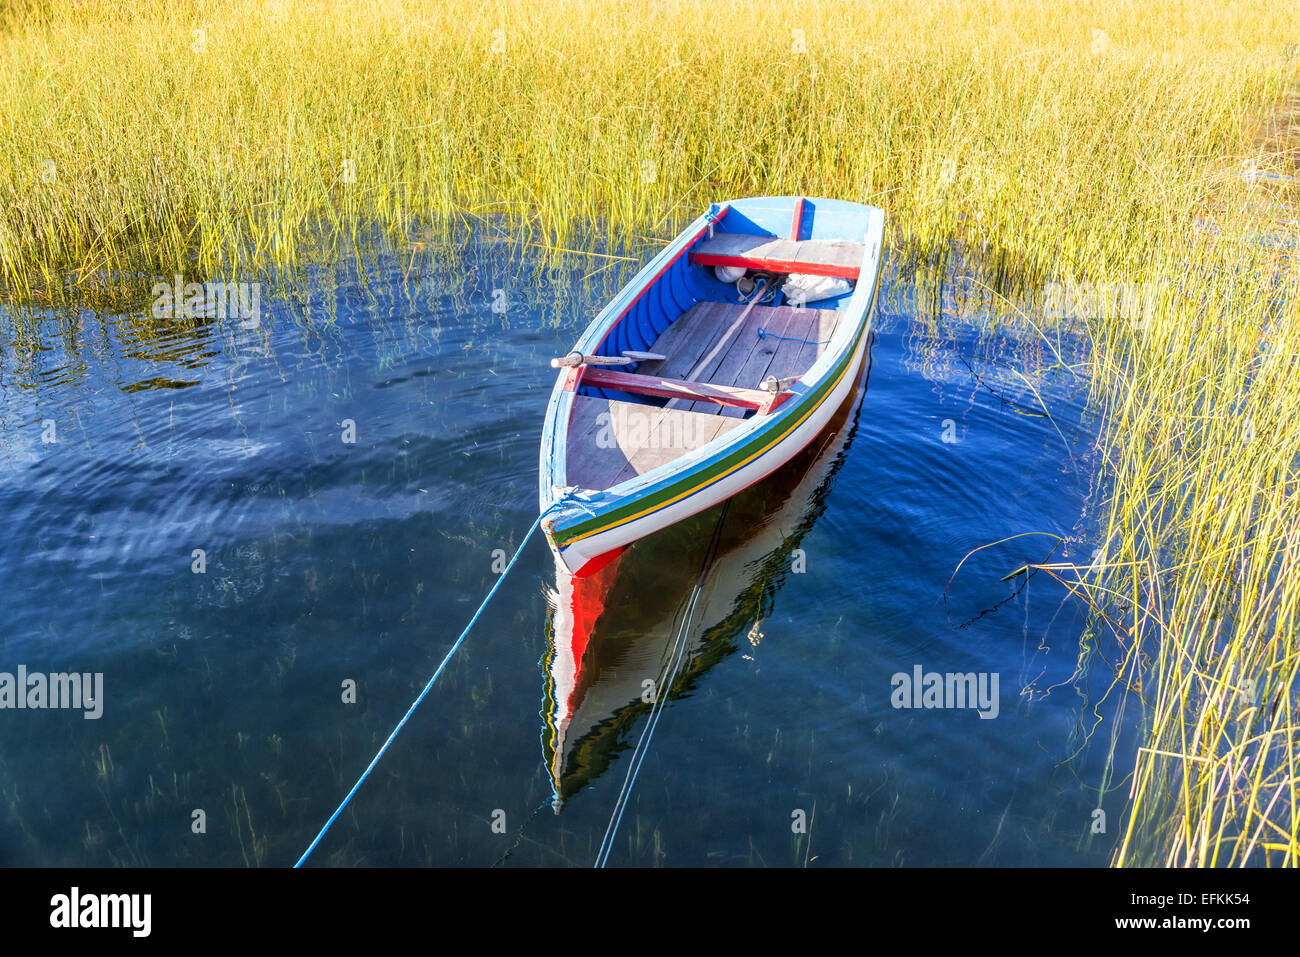 Colorful boat surrounded by reeds on Lake Titicaca near Copacabana, Bolivia - Stock Image